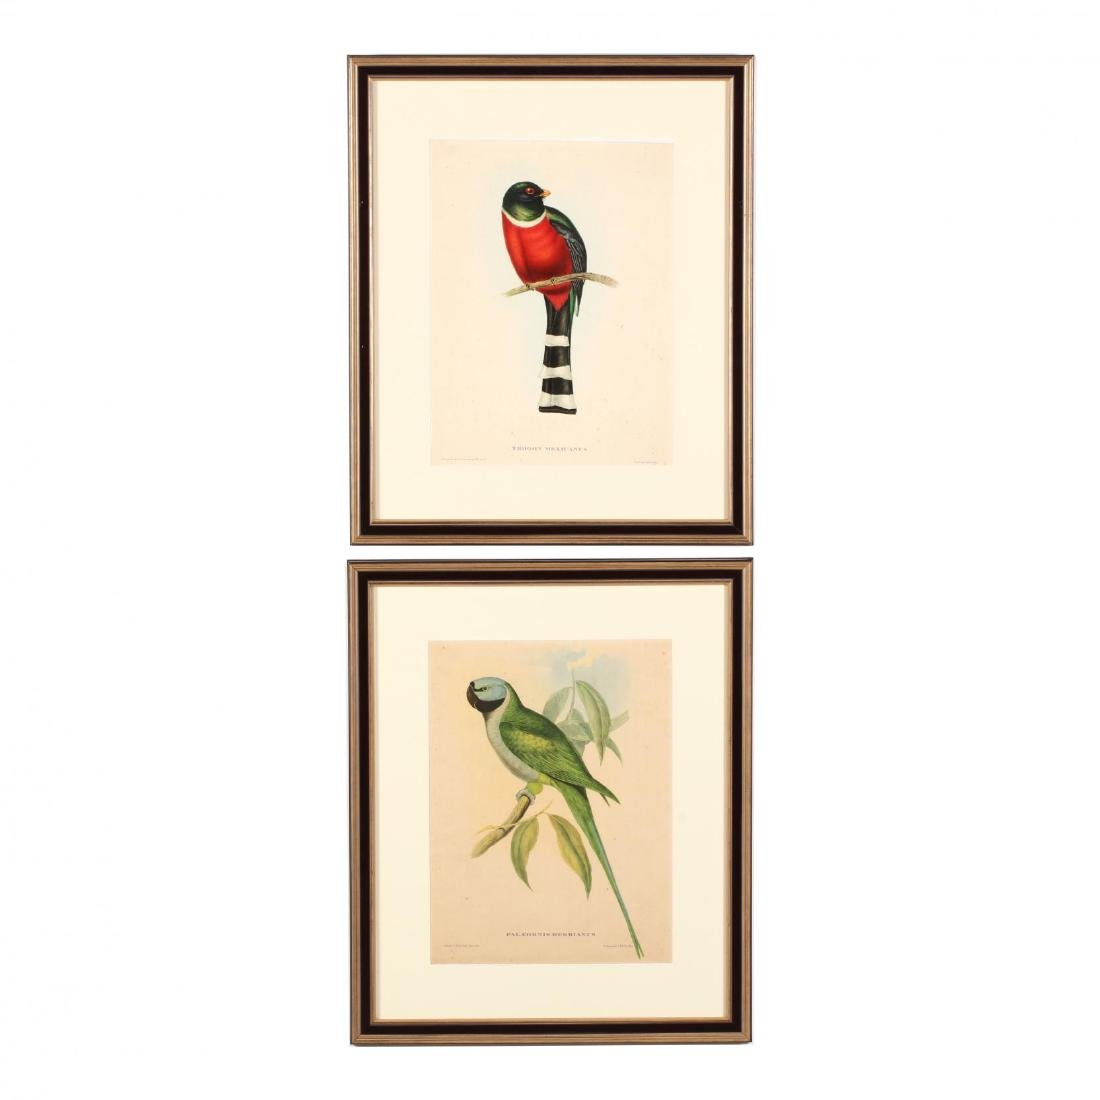 Two Framed Contemporary Prints after John Gould's